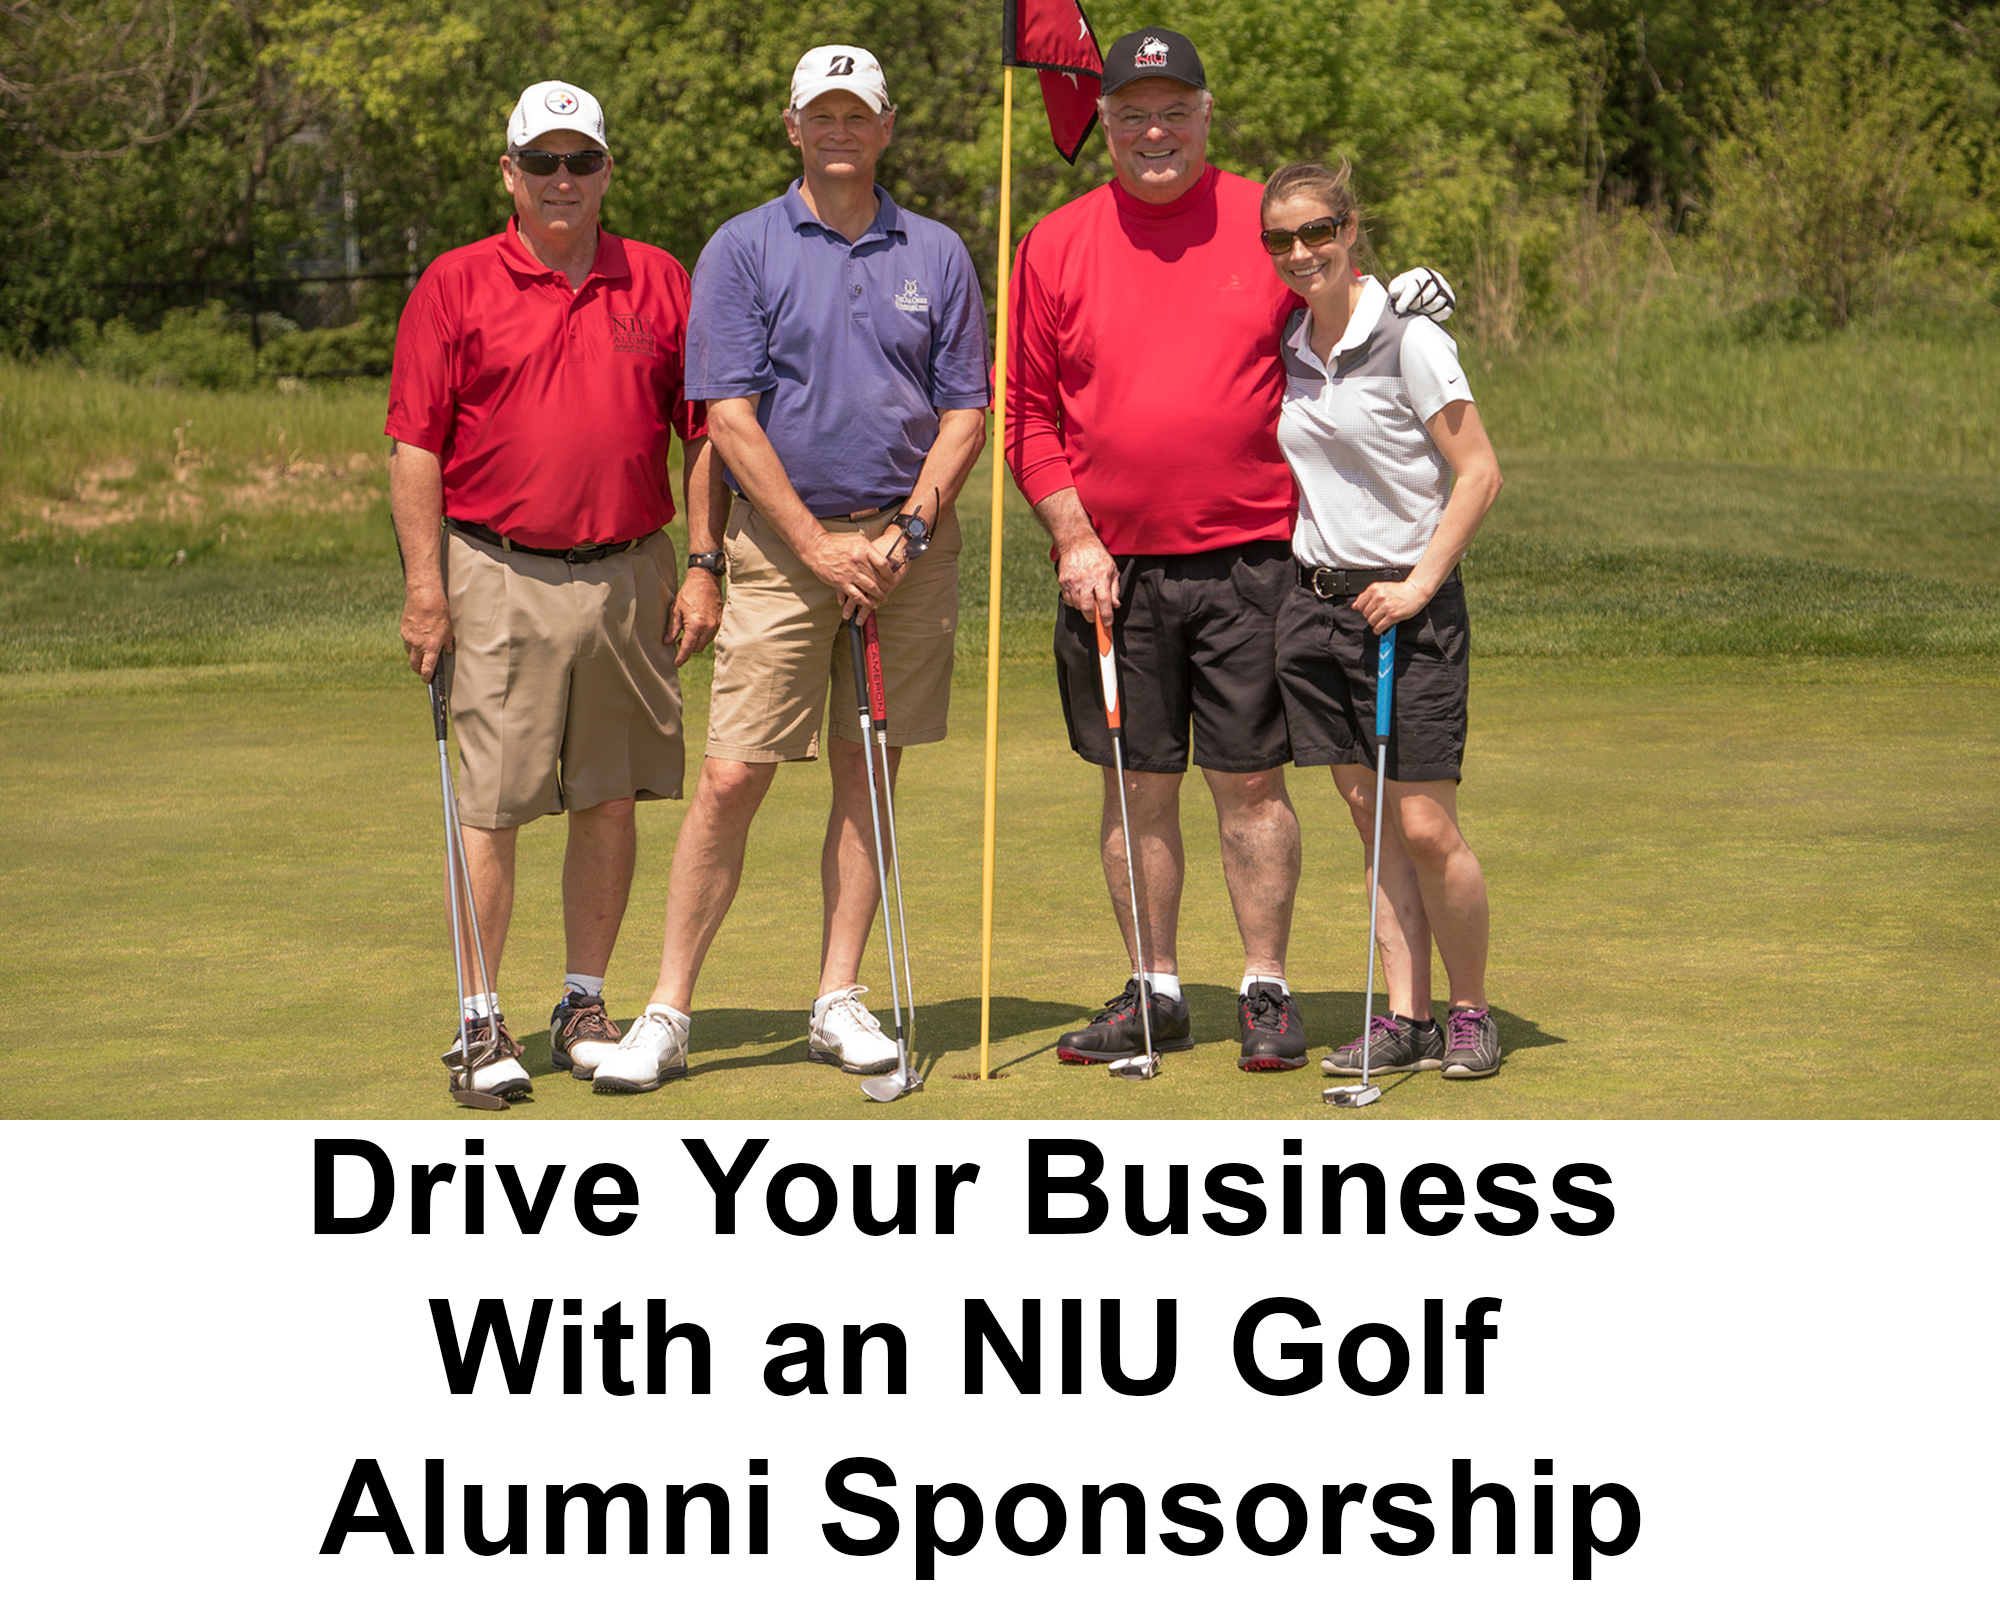 golf-outing-sponsor-graphic